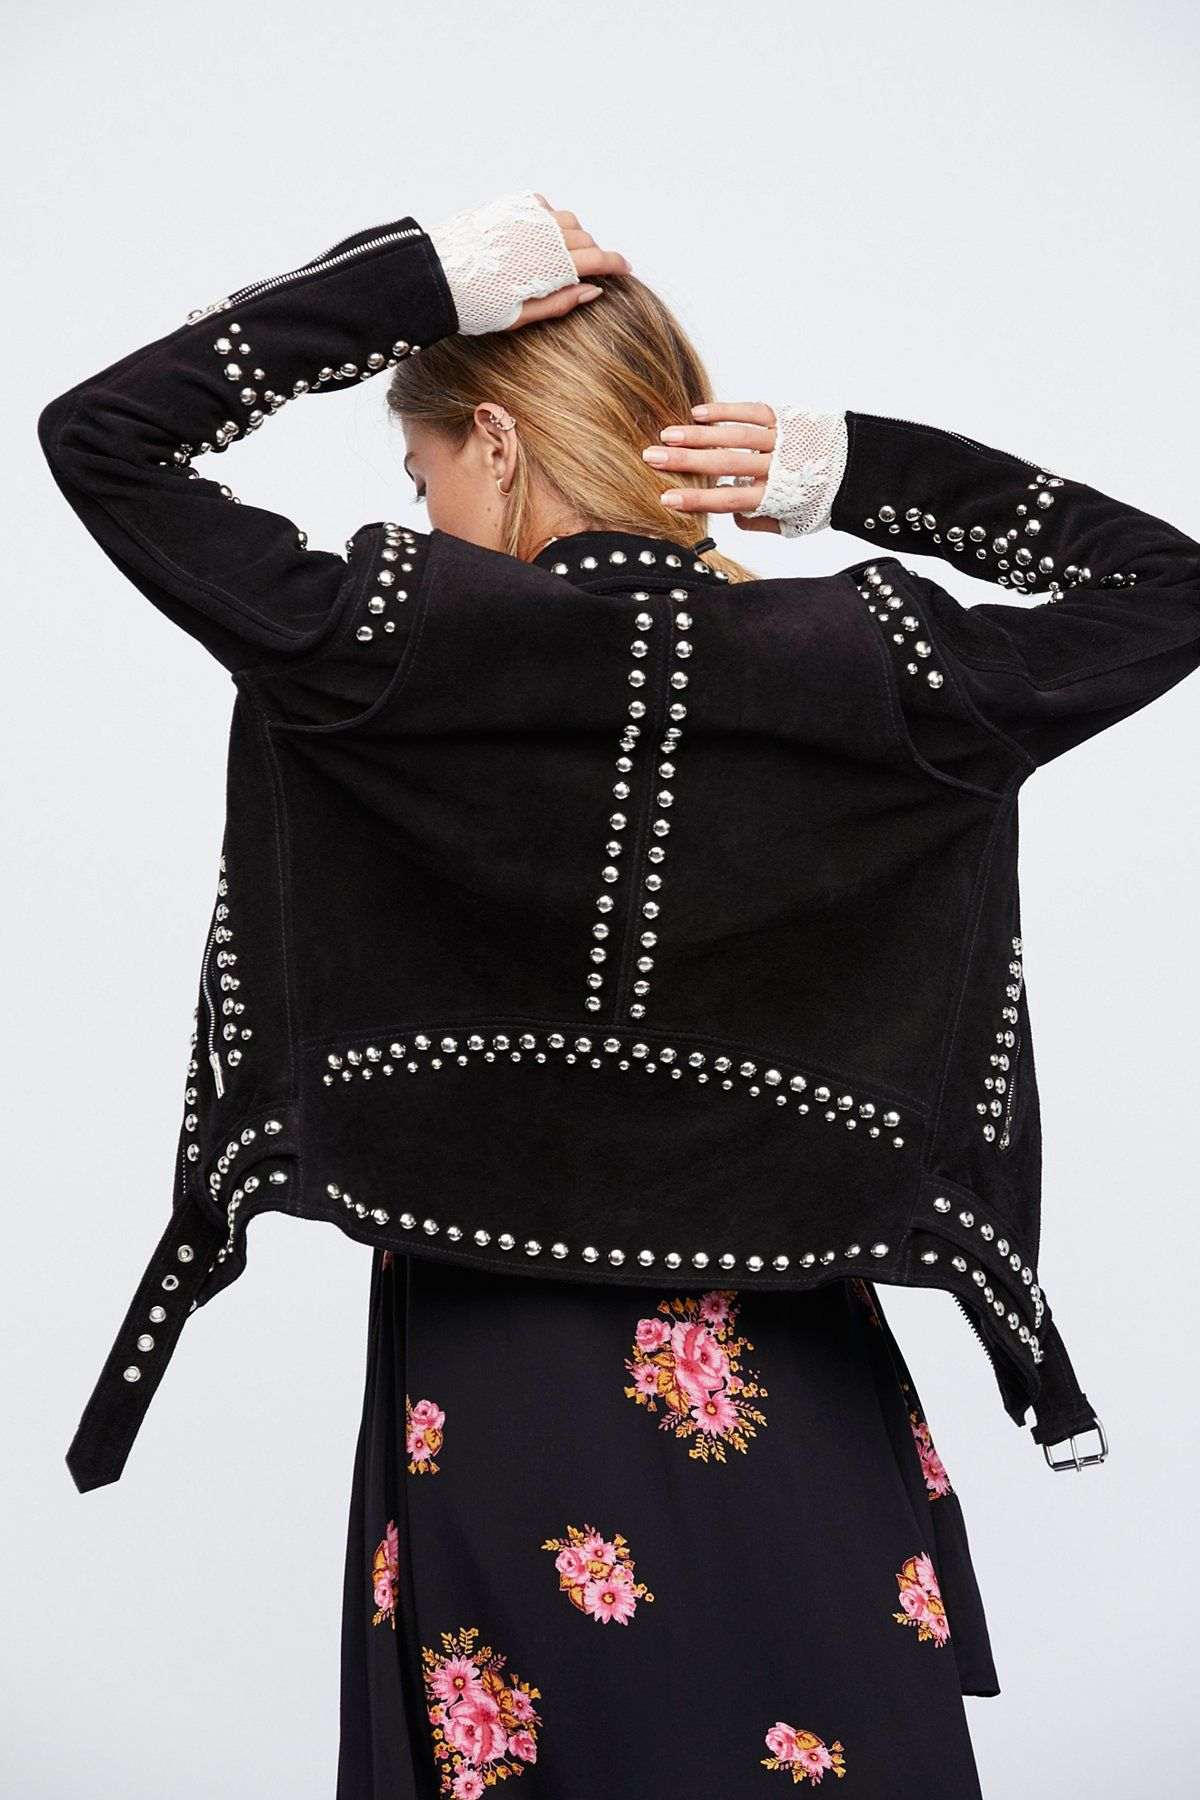 Studded Easy Rider Jacket (With images) Riders jacket